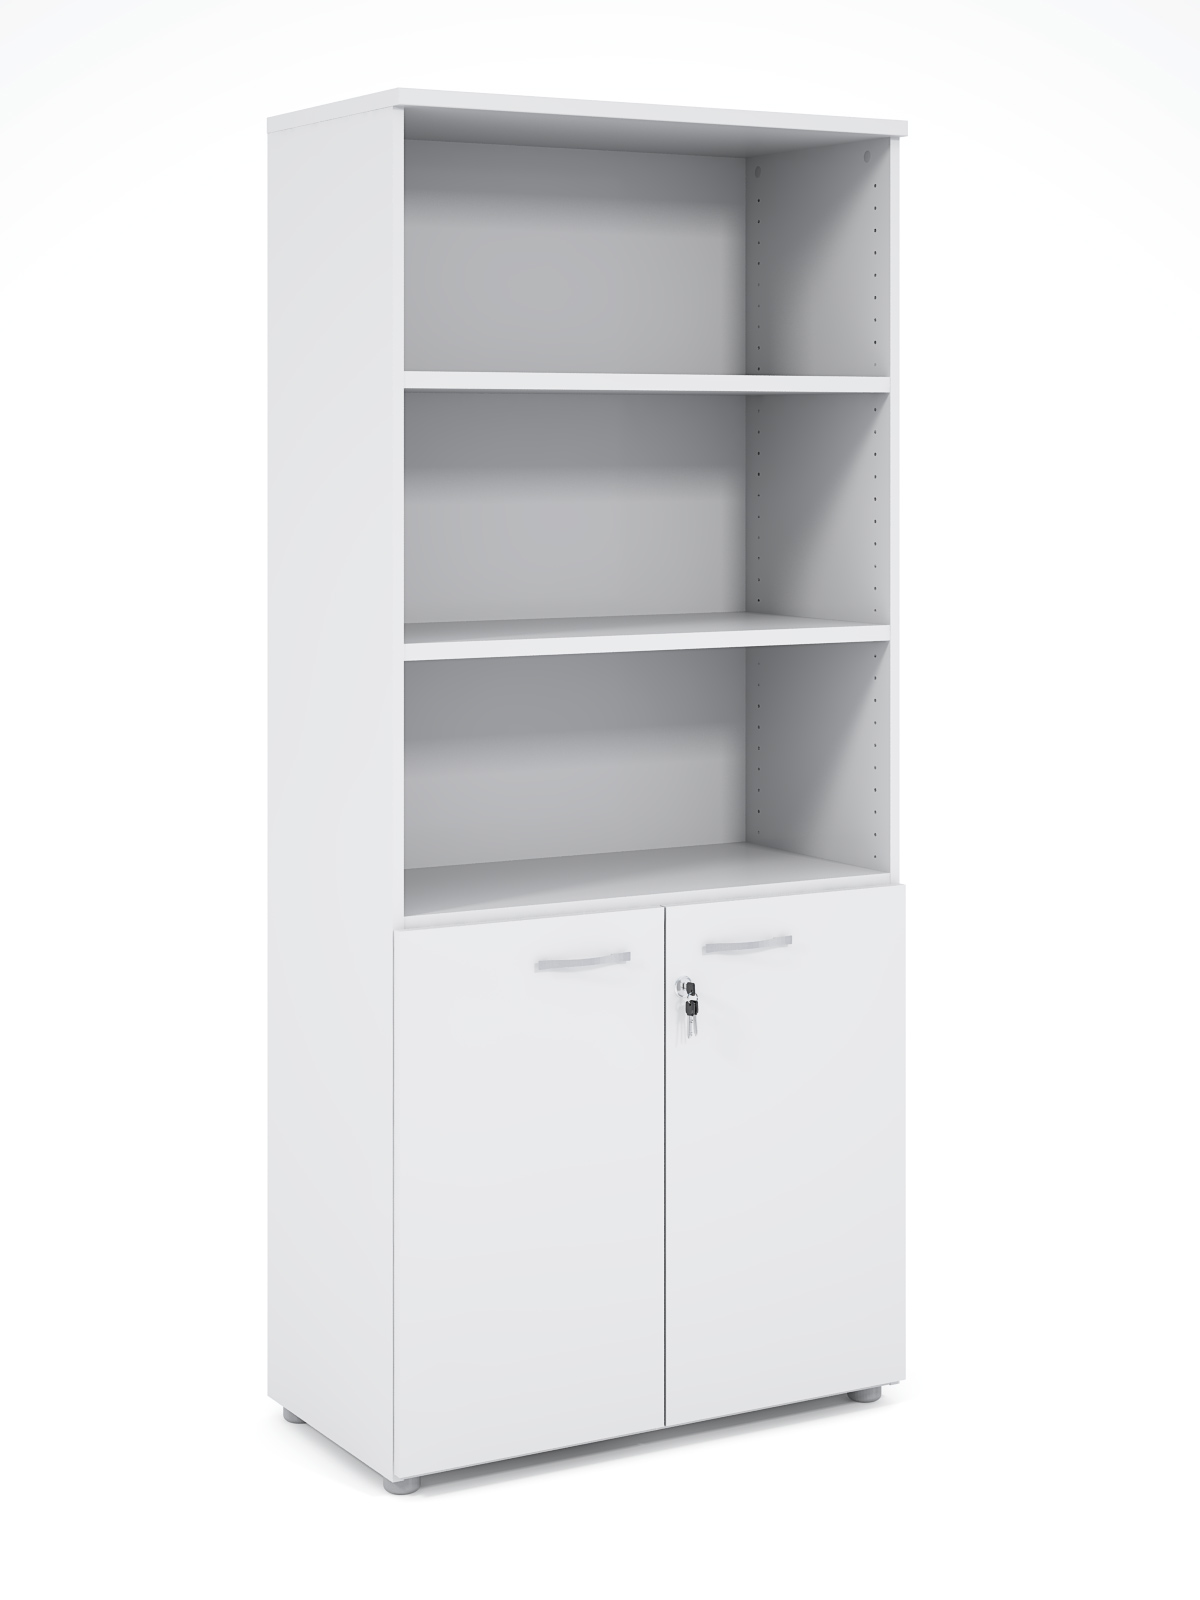 Schrank Regal Kombination Regal Schrank Kombination Mit Schloß Express L 39h1265